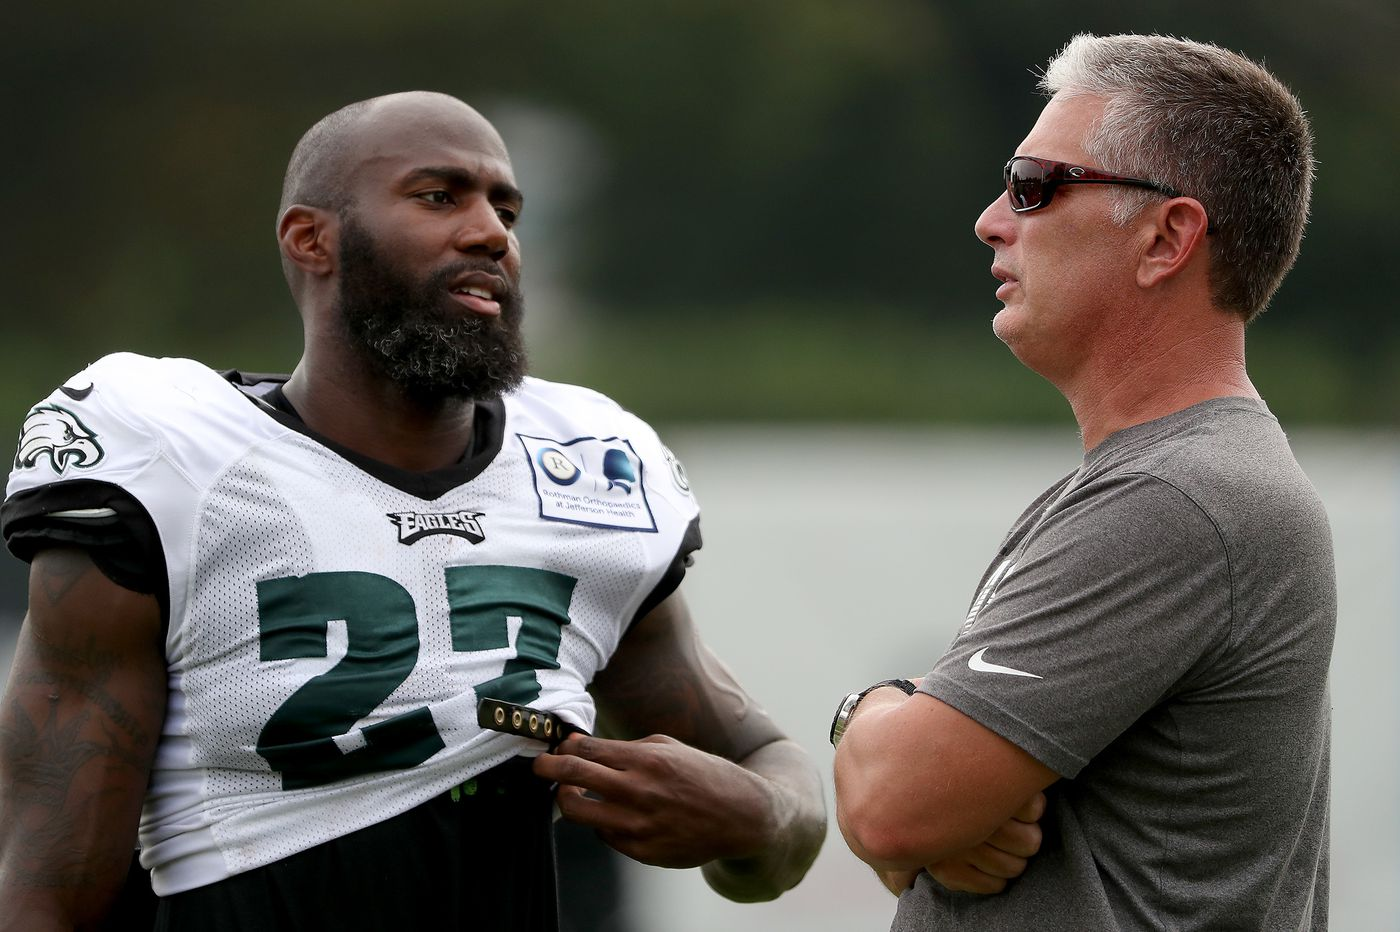 Bring on the Ravens: Eagles players looking forward to two days of joint practices with Baltimore